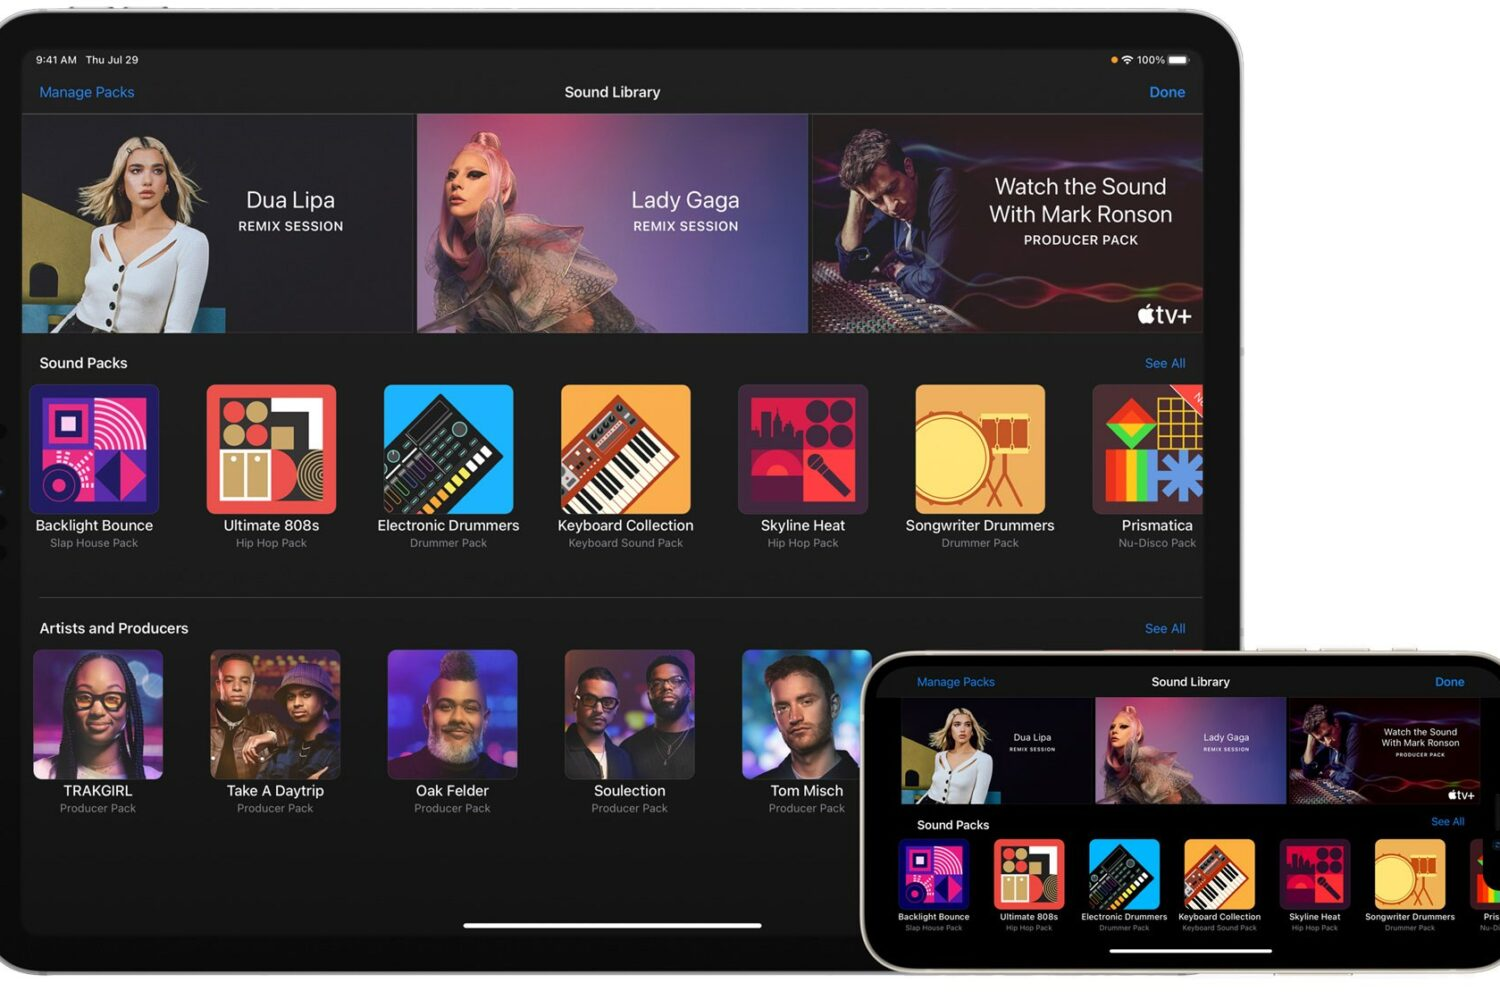 An image showing Appel GarageBand on iPhone and iPad with July 2021 sound packs from Dua Lipa, Lady Gaga and other music producers